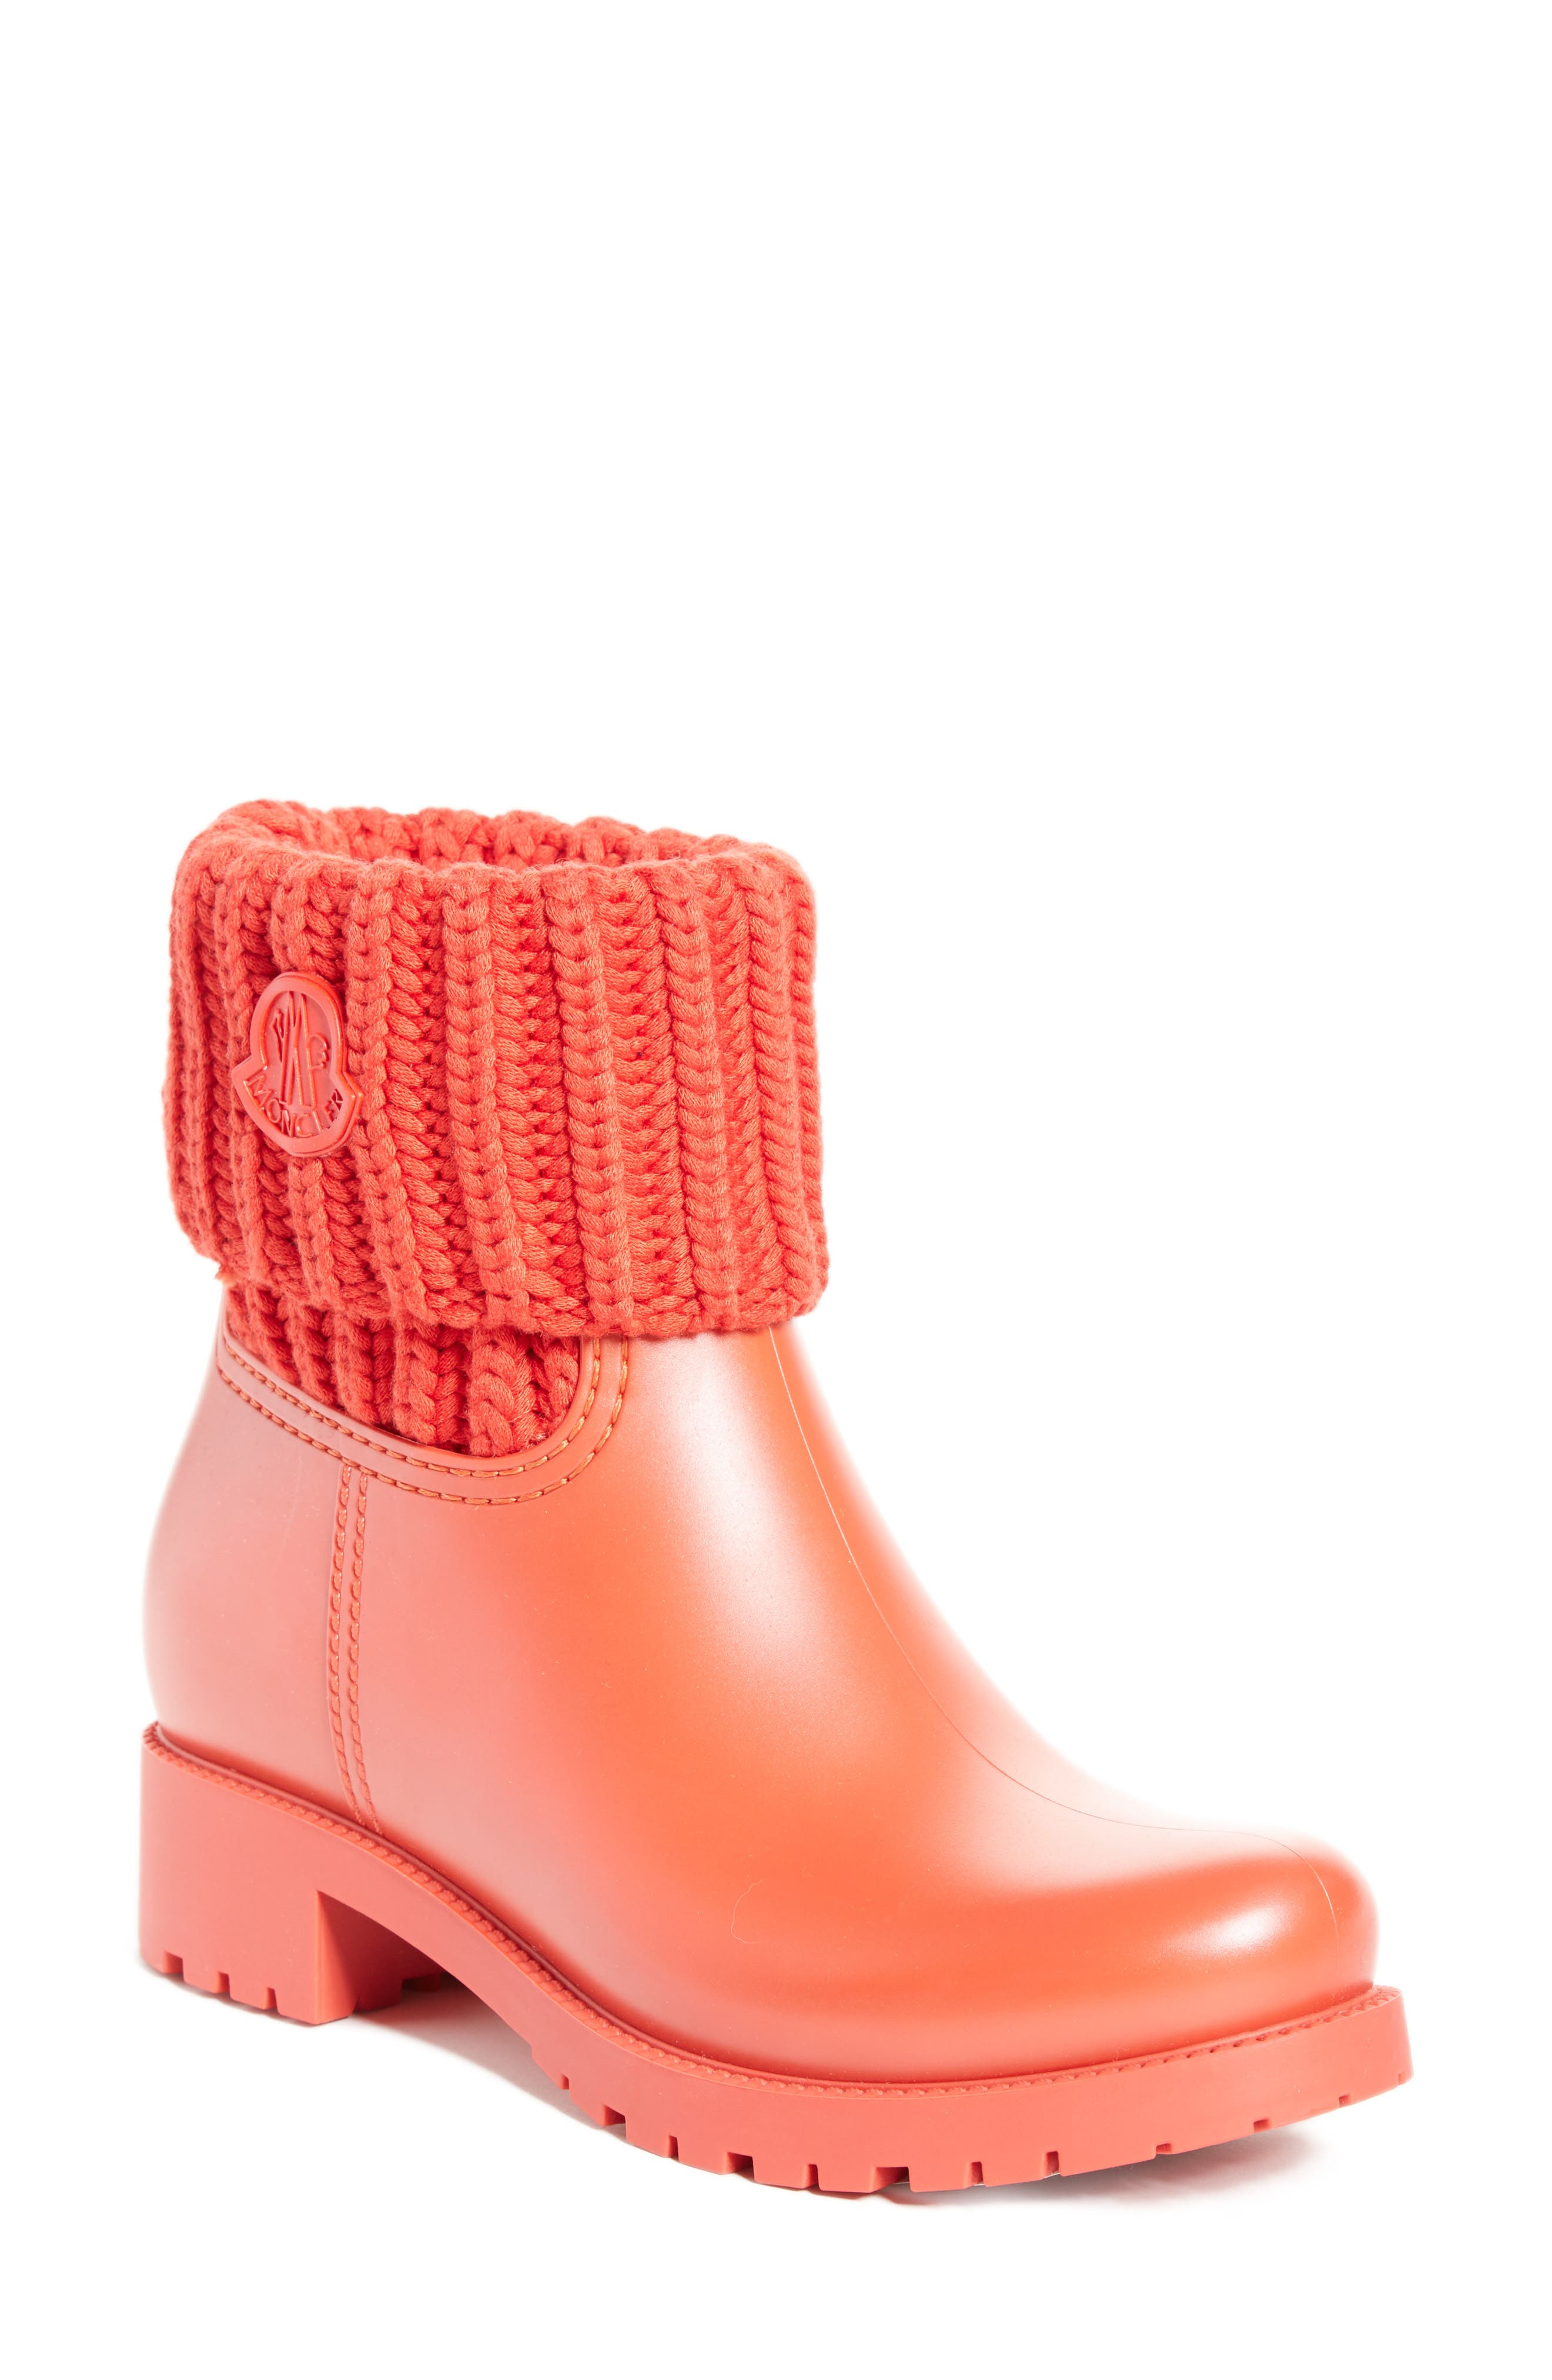 MONCLER 'Ginette' Knit Cuff Leather Rain Boot